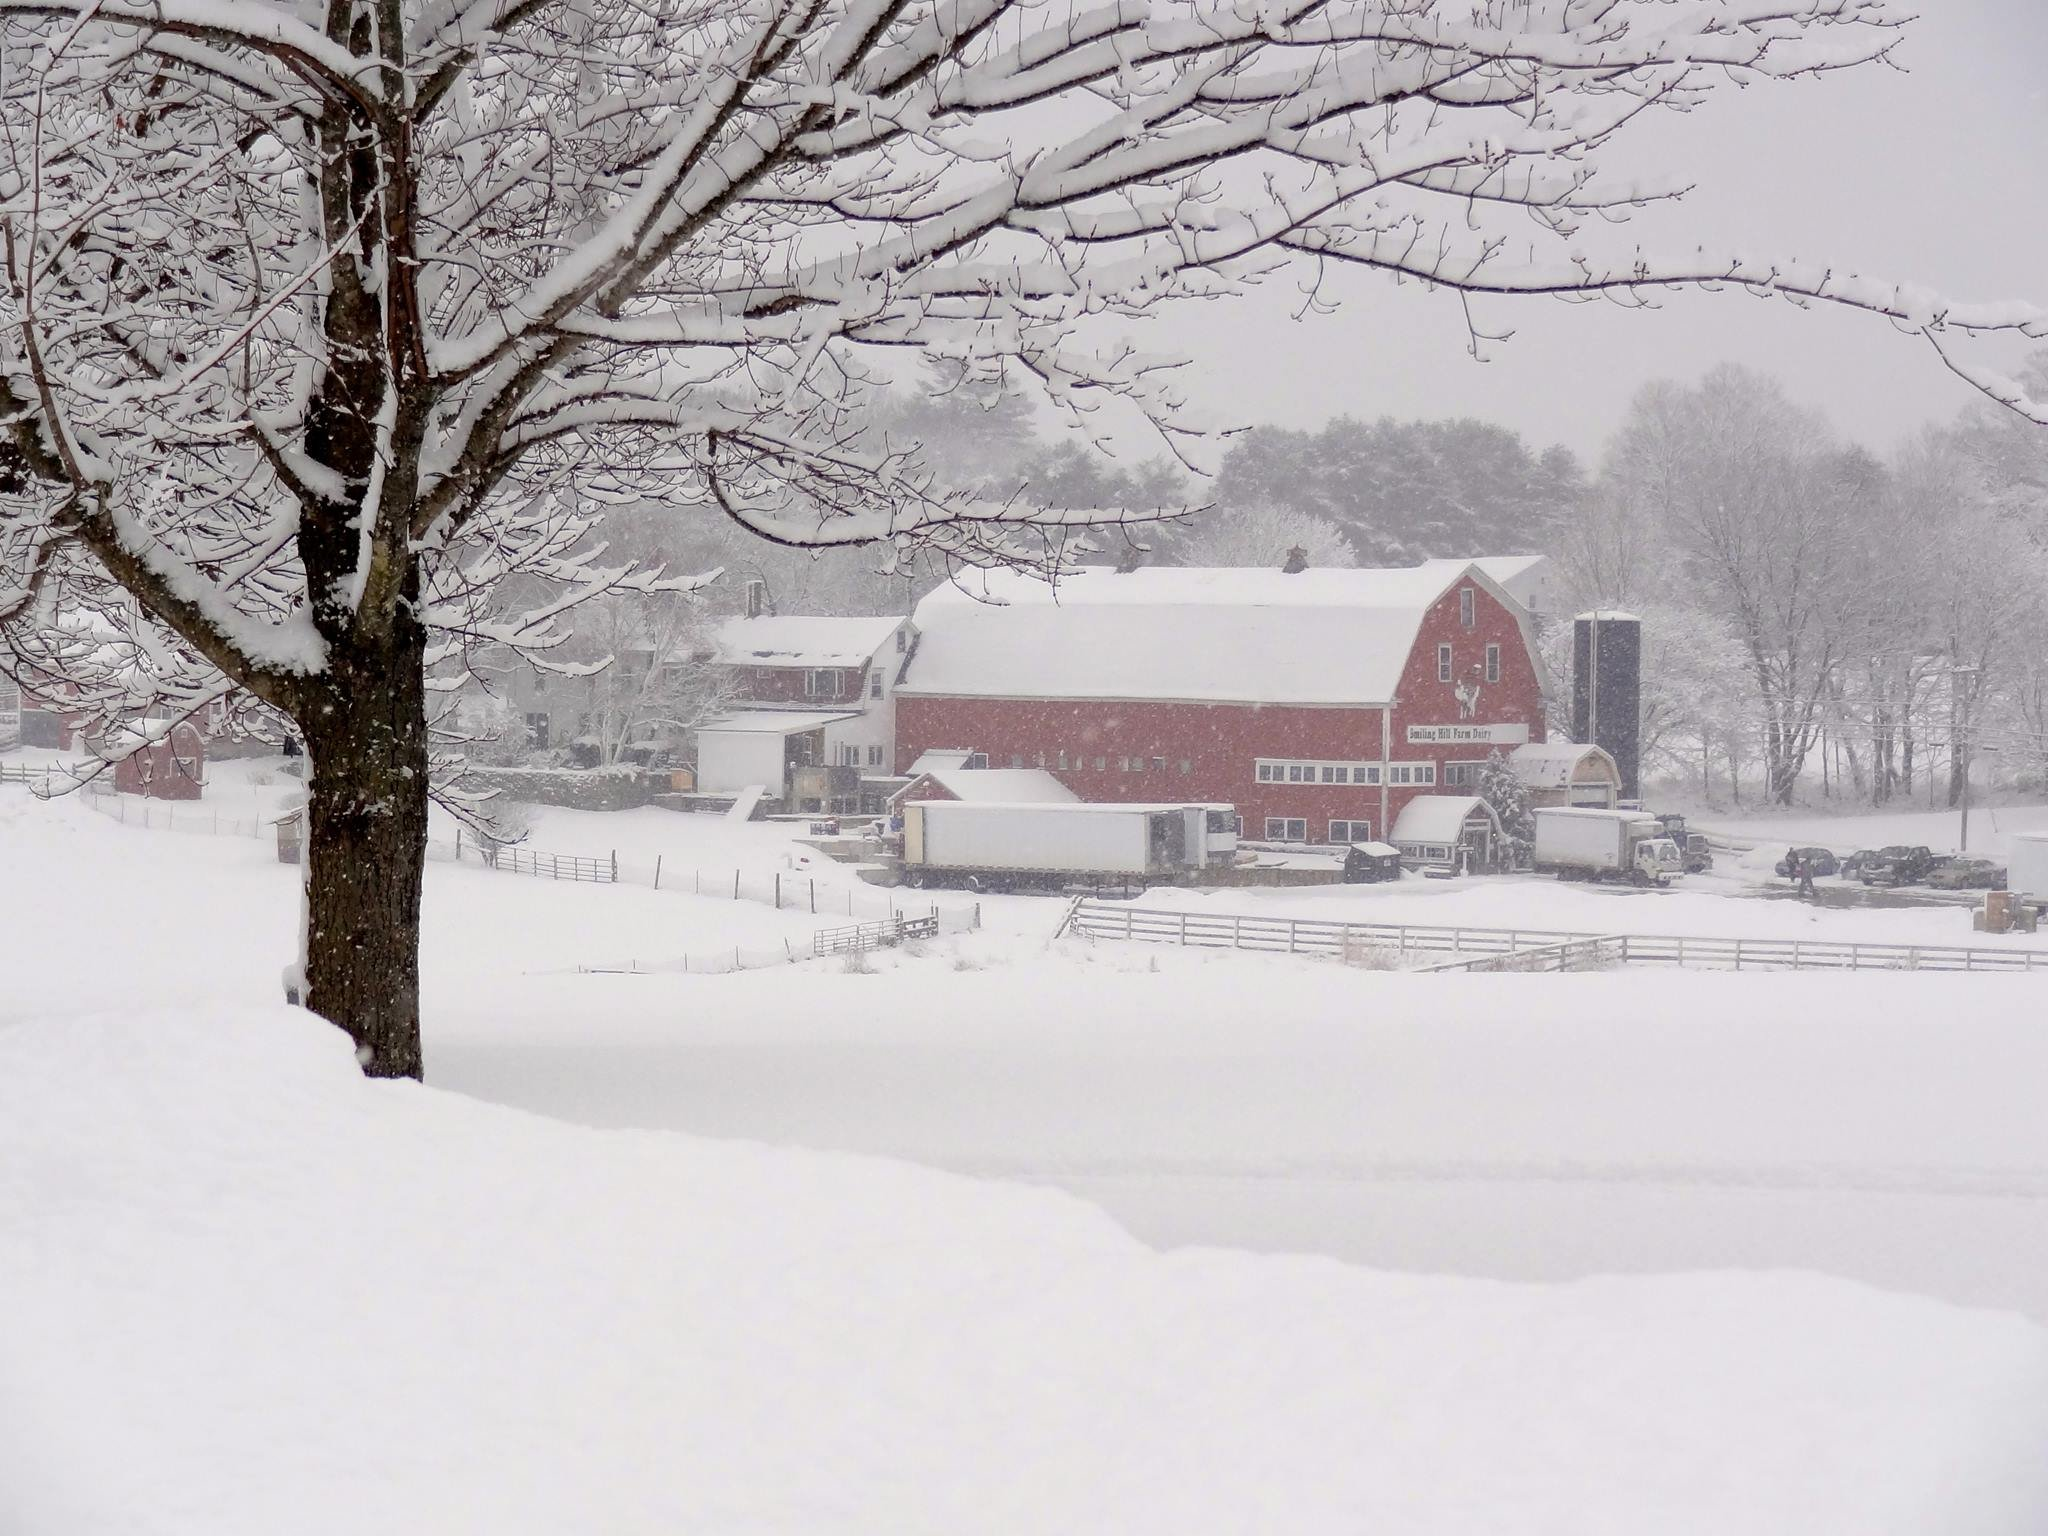 Winter is a beautiful season on the Farm. We offer cross country skiing and snowshoeing, including rentals.